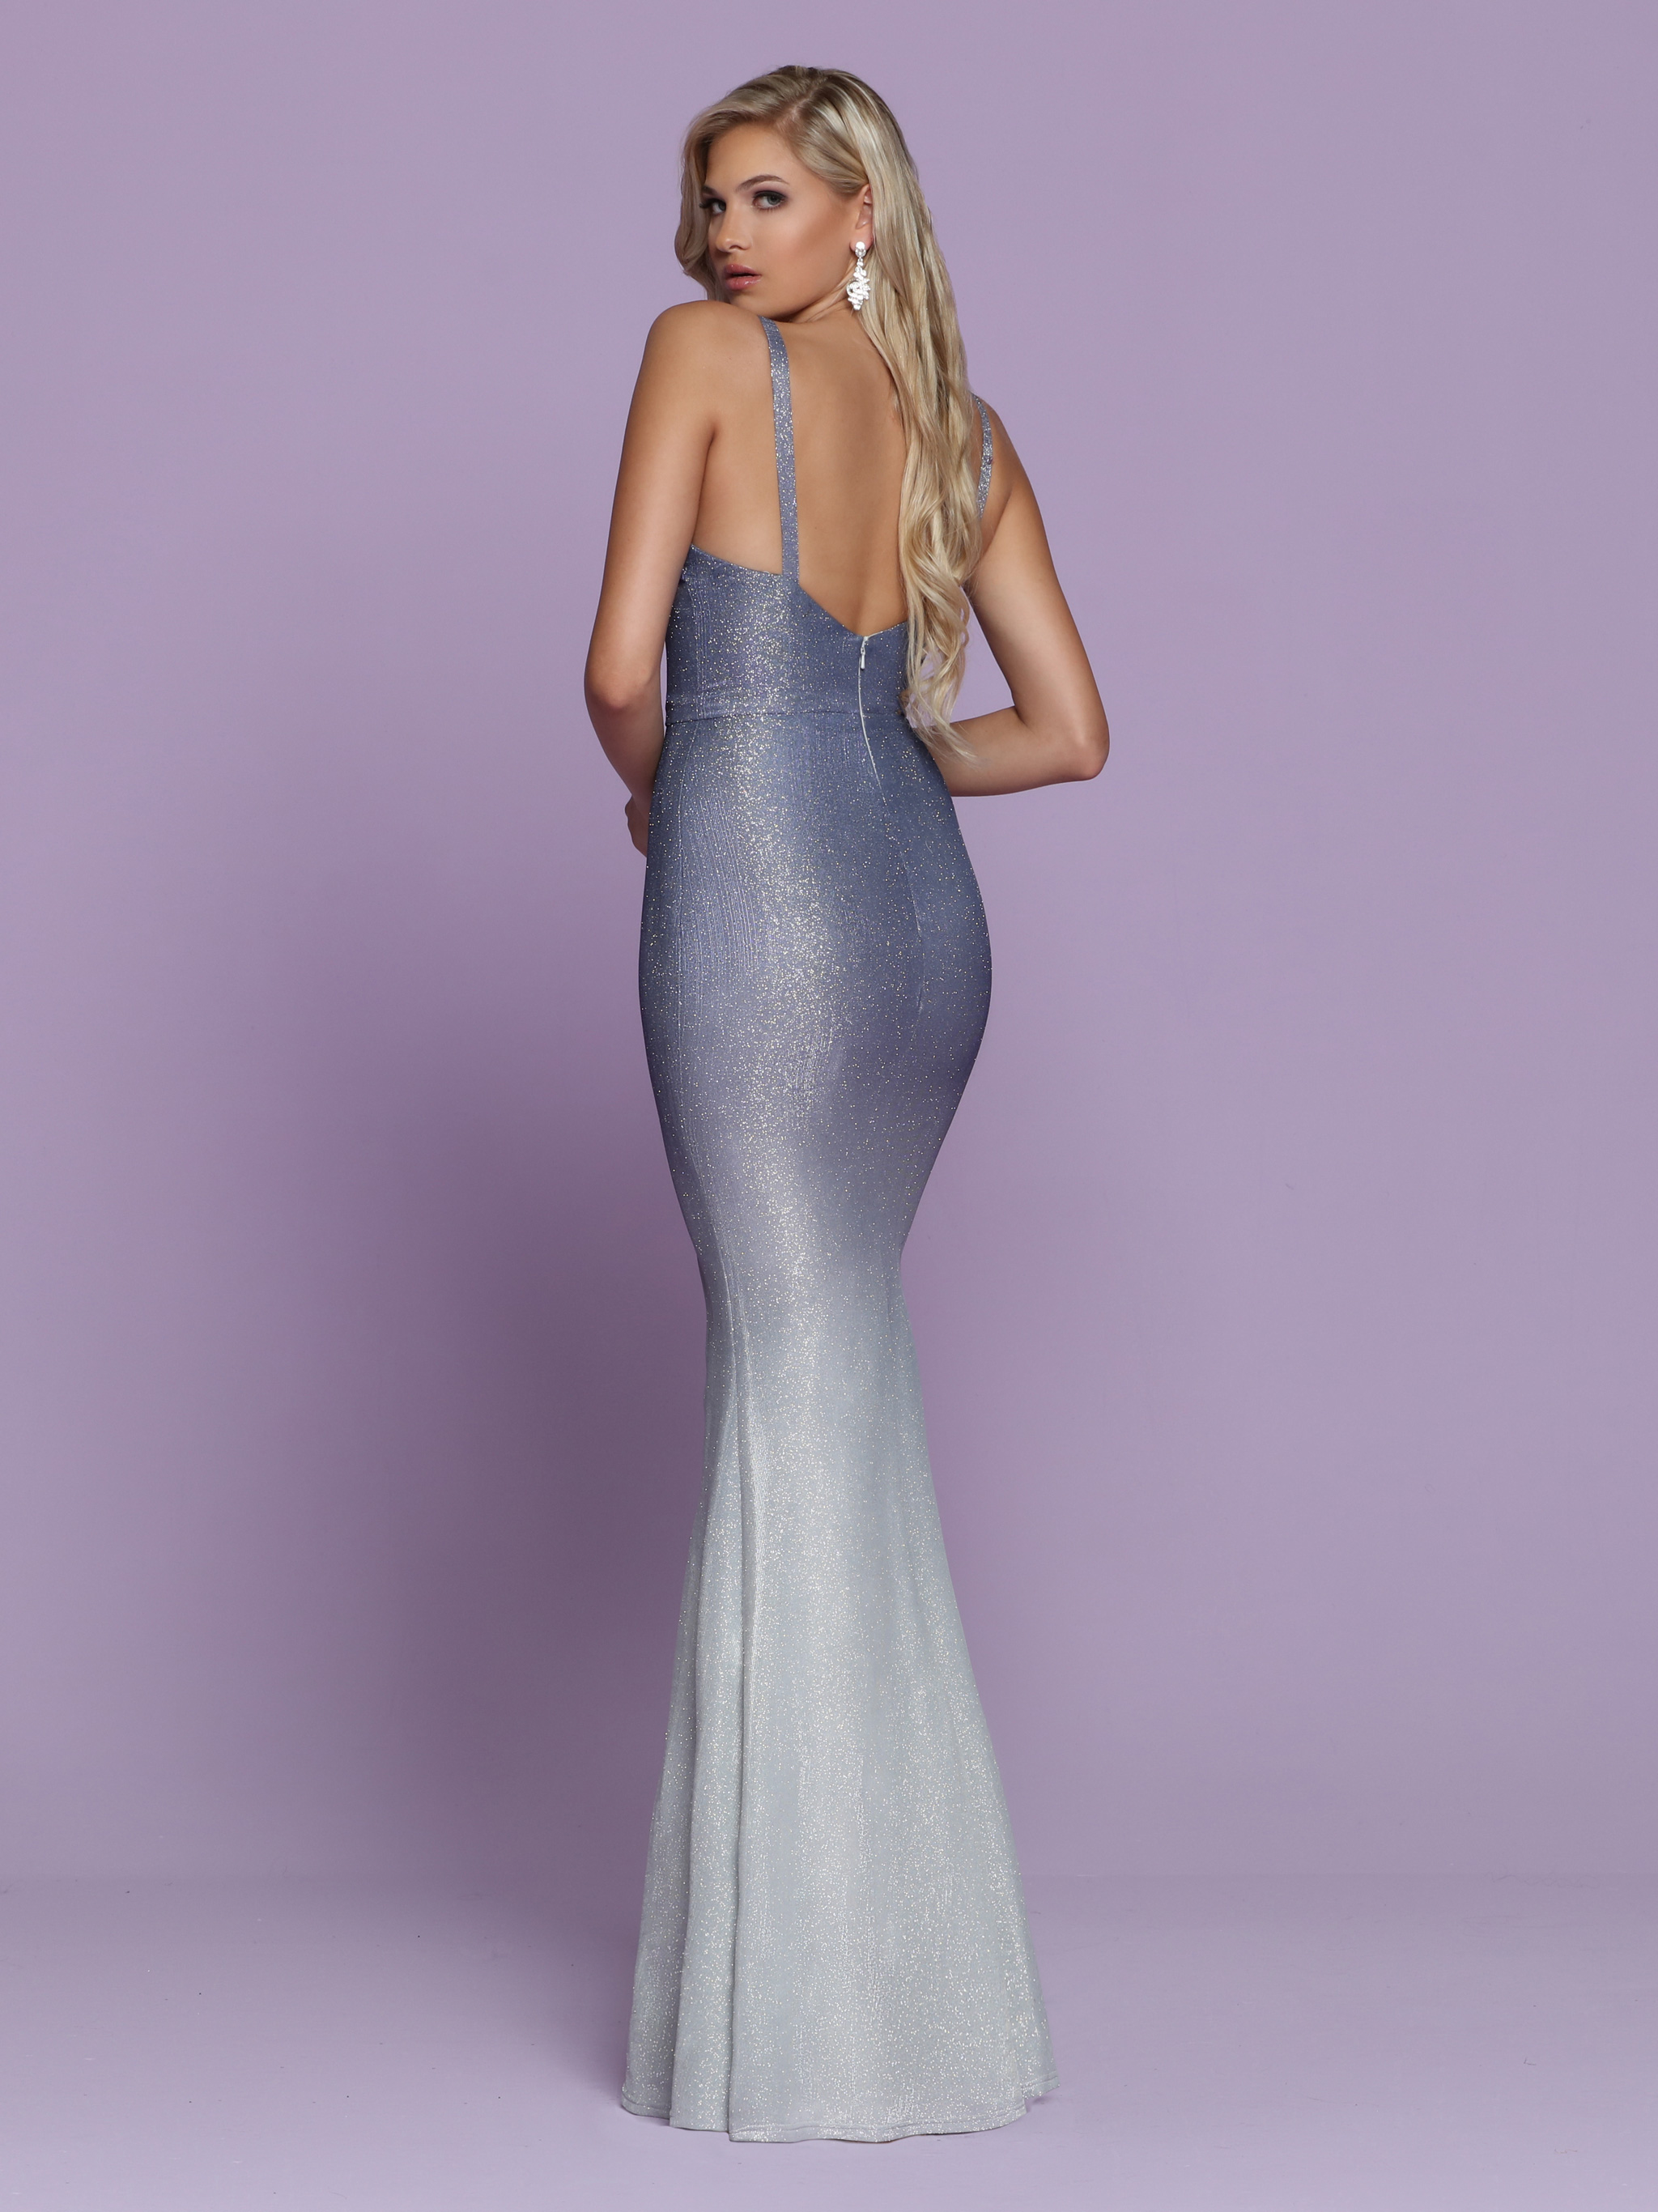 Image showing back view of style #72055